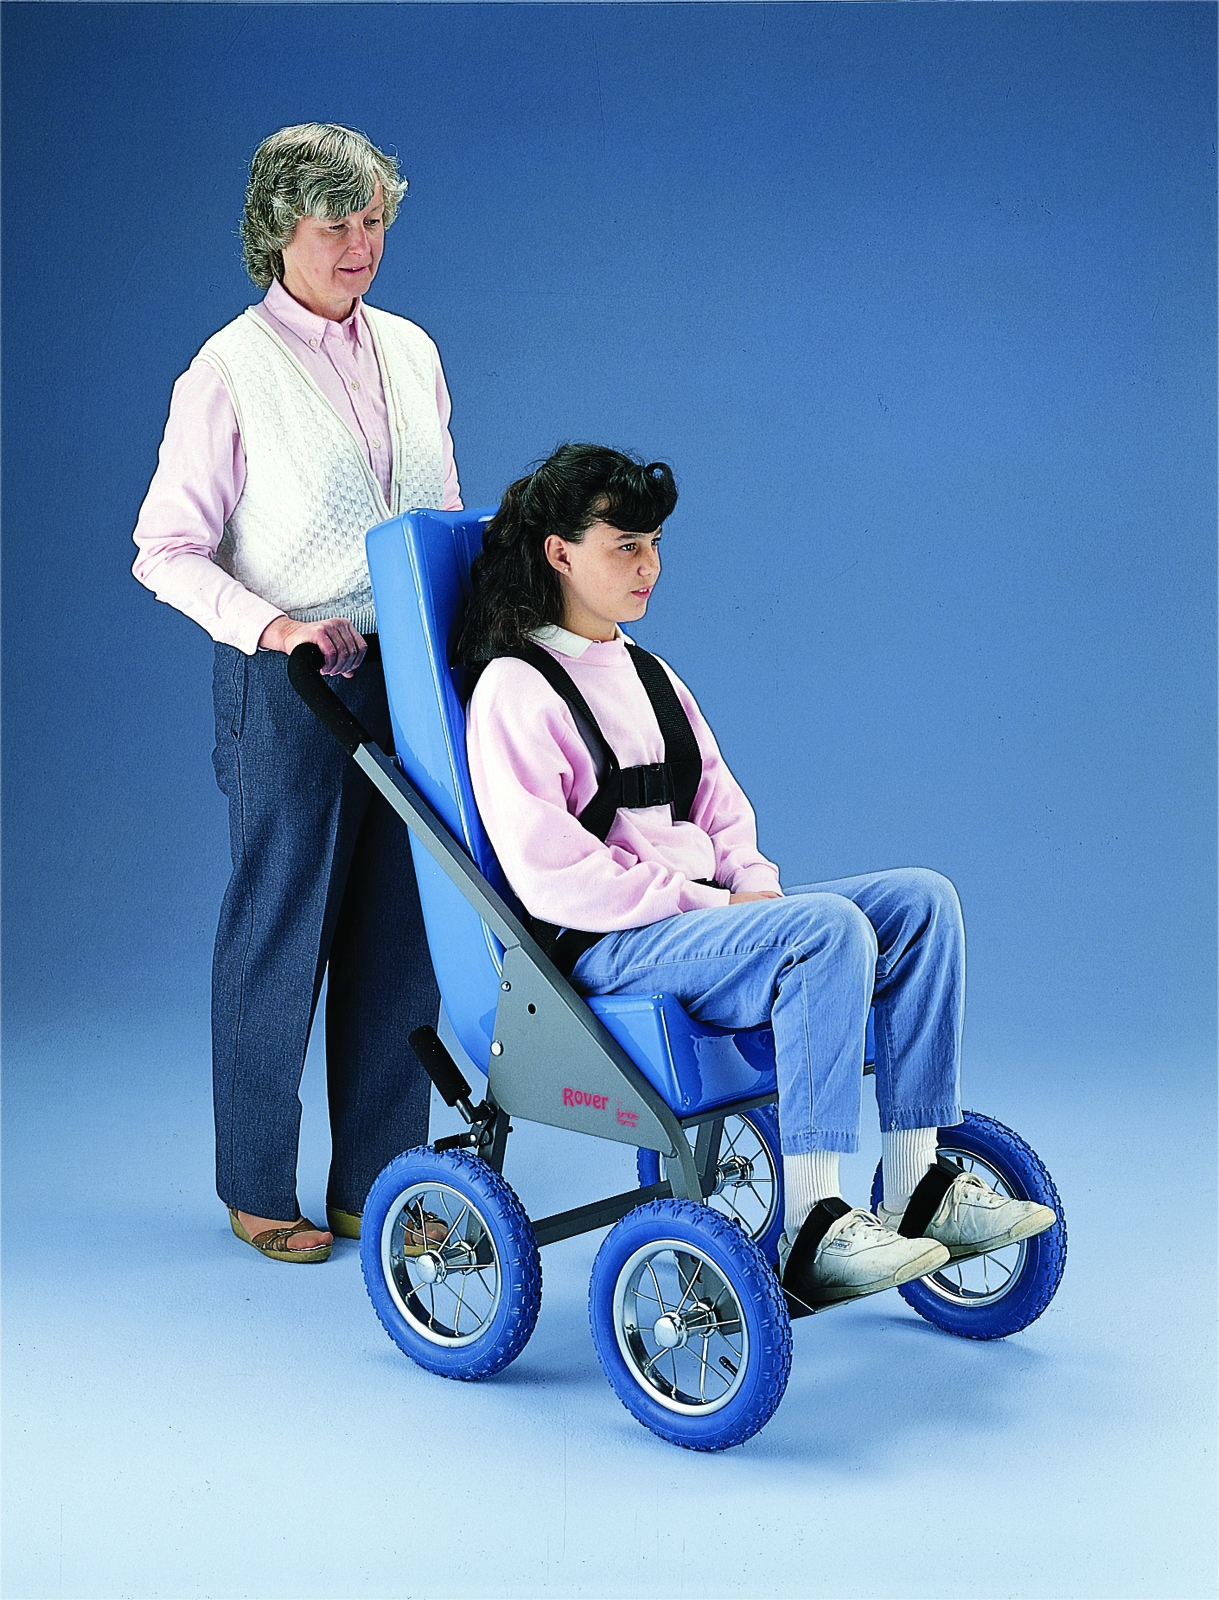 Rover Stroller With Feeder Seat; X-large ; Blue - 30-3523b - Facilities Strollers & Wheelchairs 30-3523B